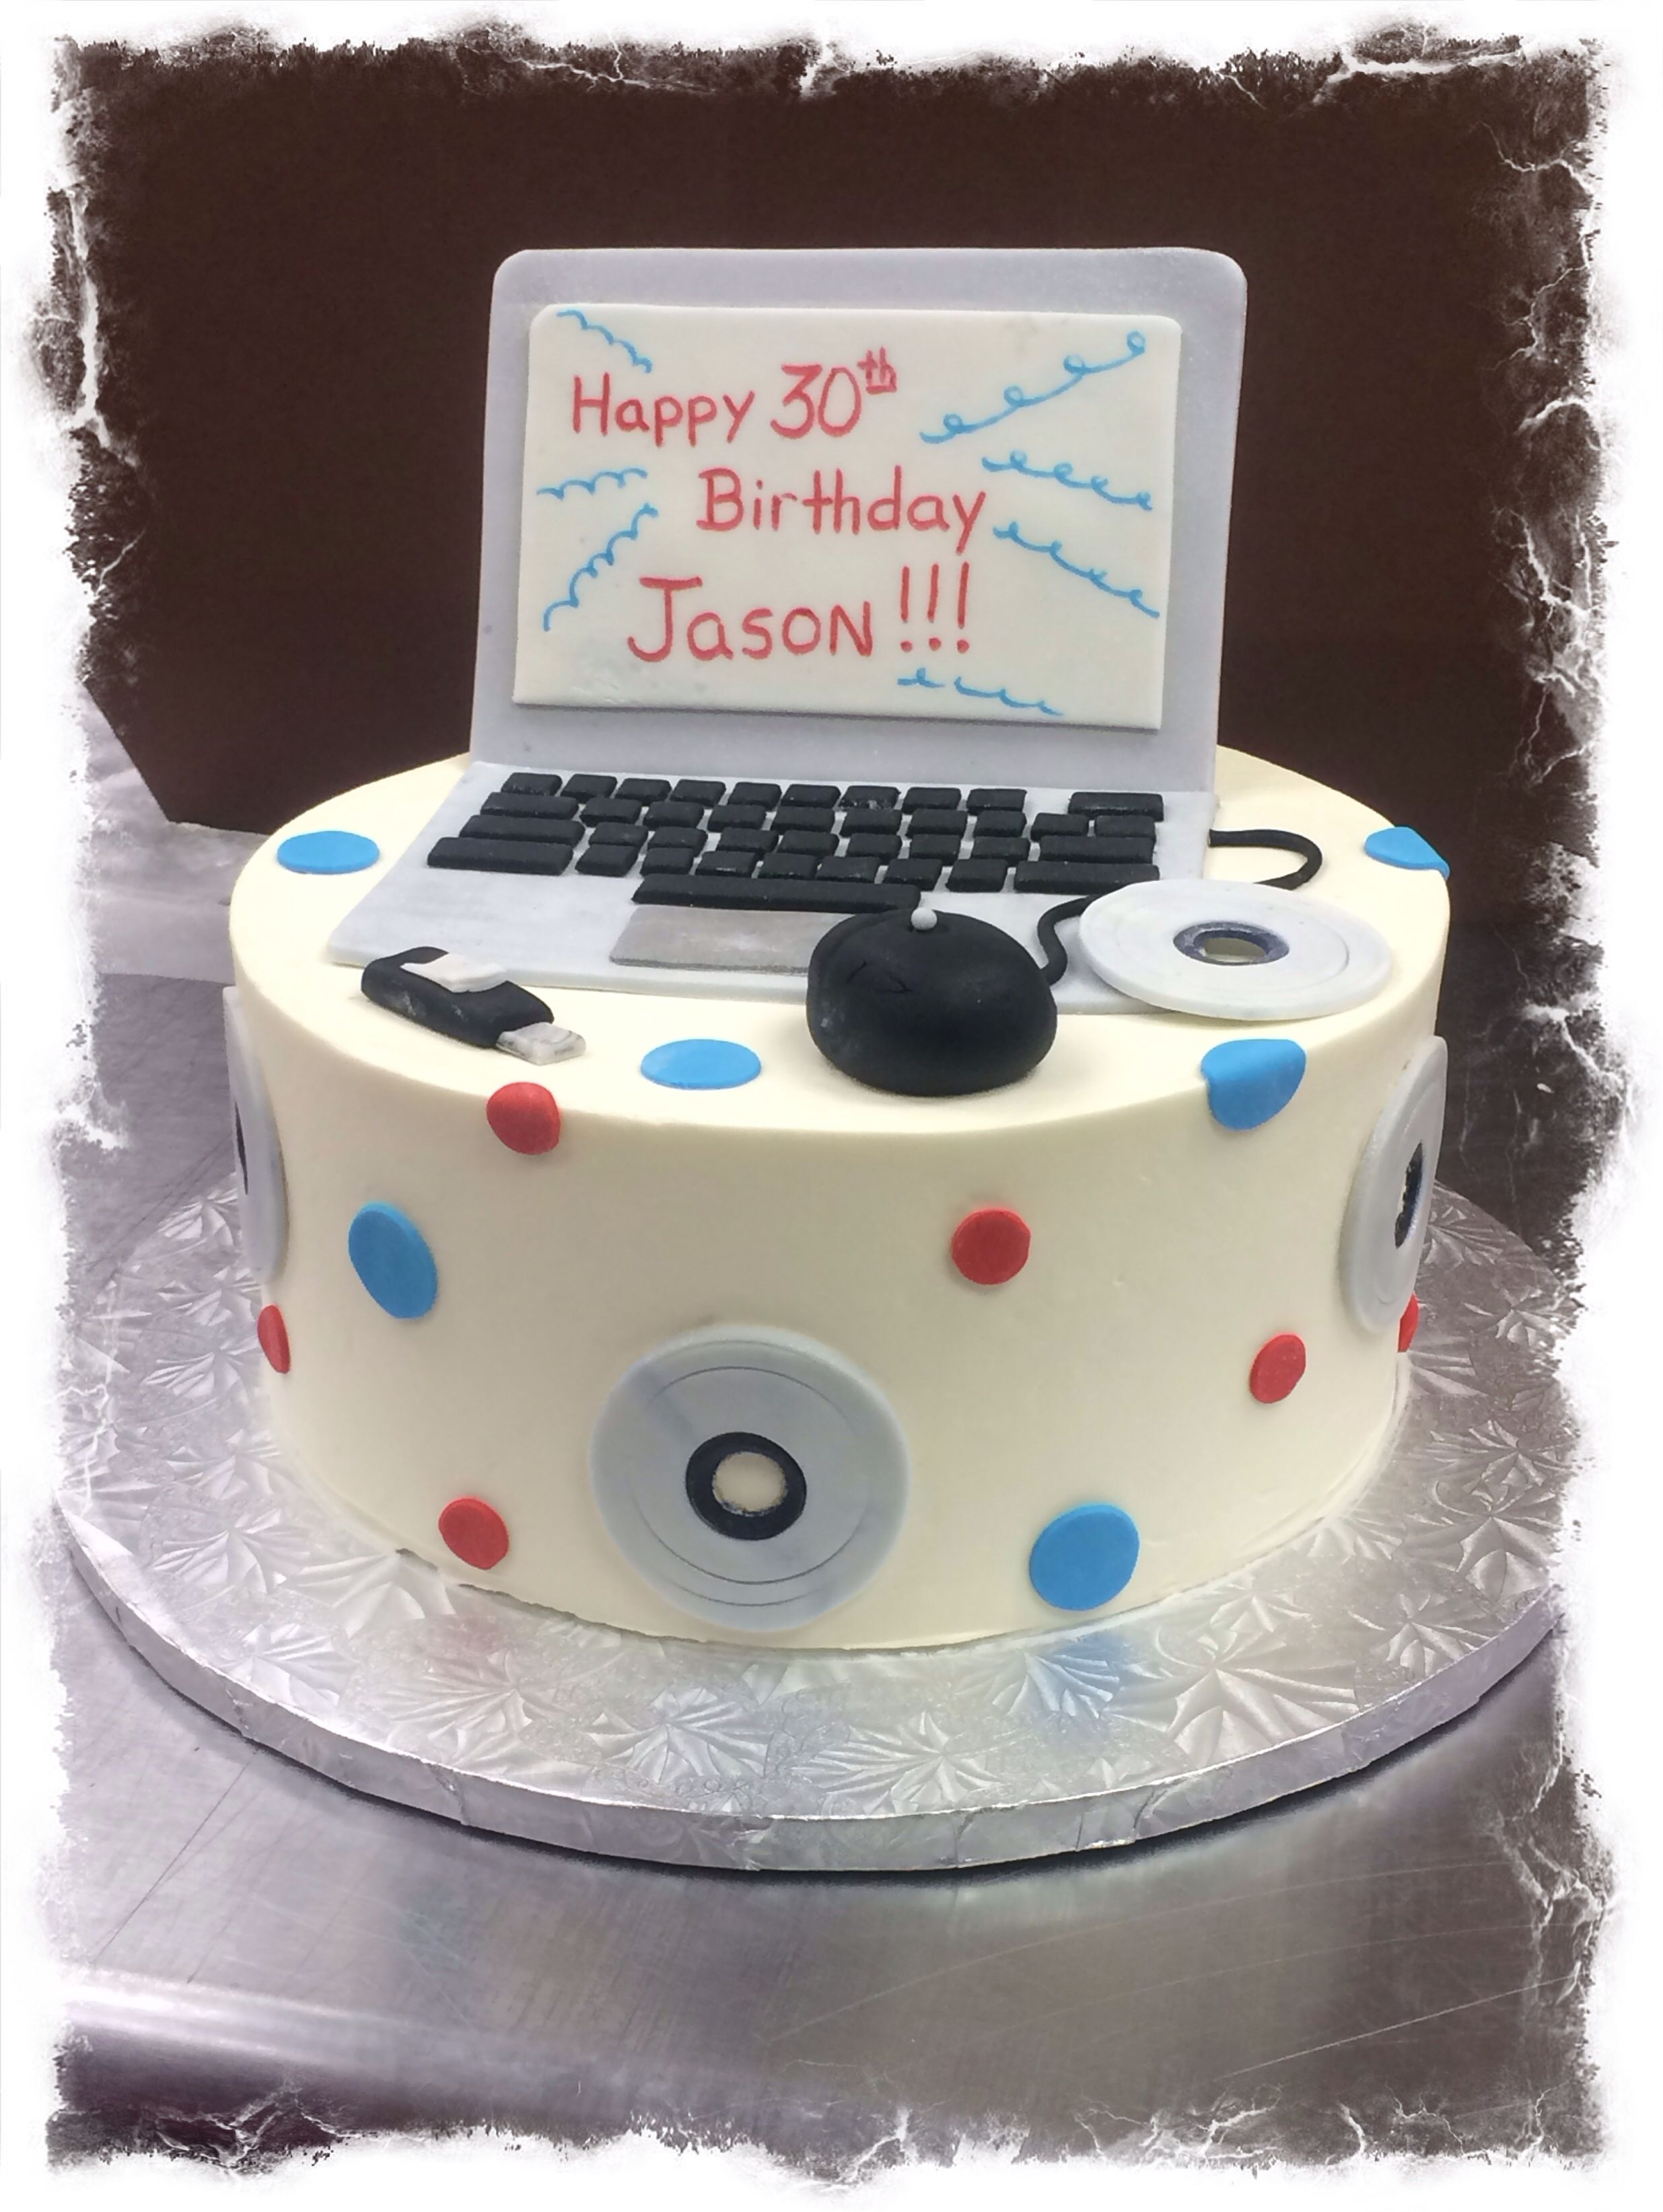 Excellent Computer Birthday Cake Computer Cake Cake Cake Toppings Funny Birthday Cards Online Barepcheapnameinfo